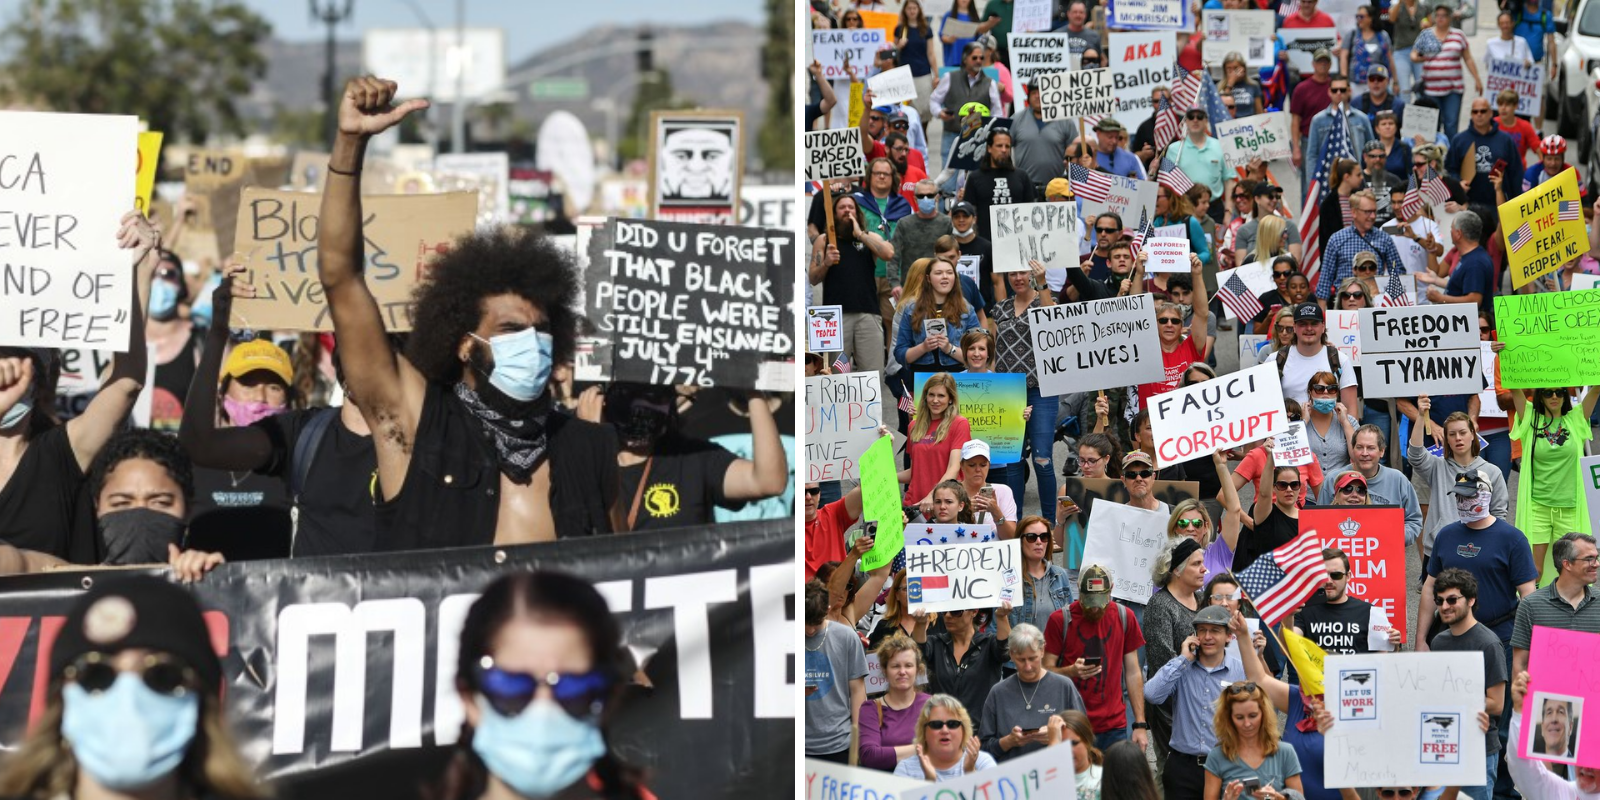 HIPPOCRATIC HYPOCRISY: Over 1,300 health professionals endorsed BLM protests after condemning lockdown protests